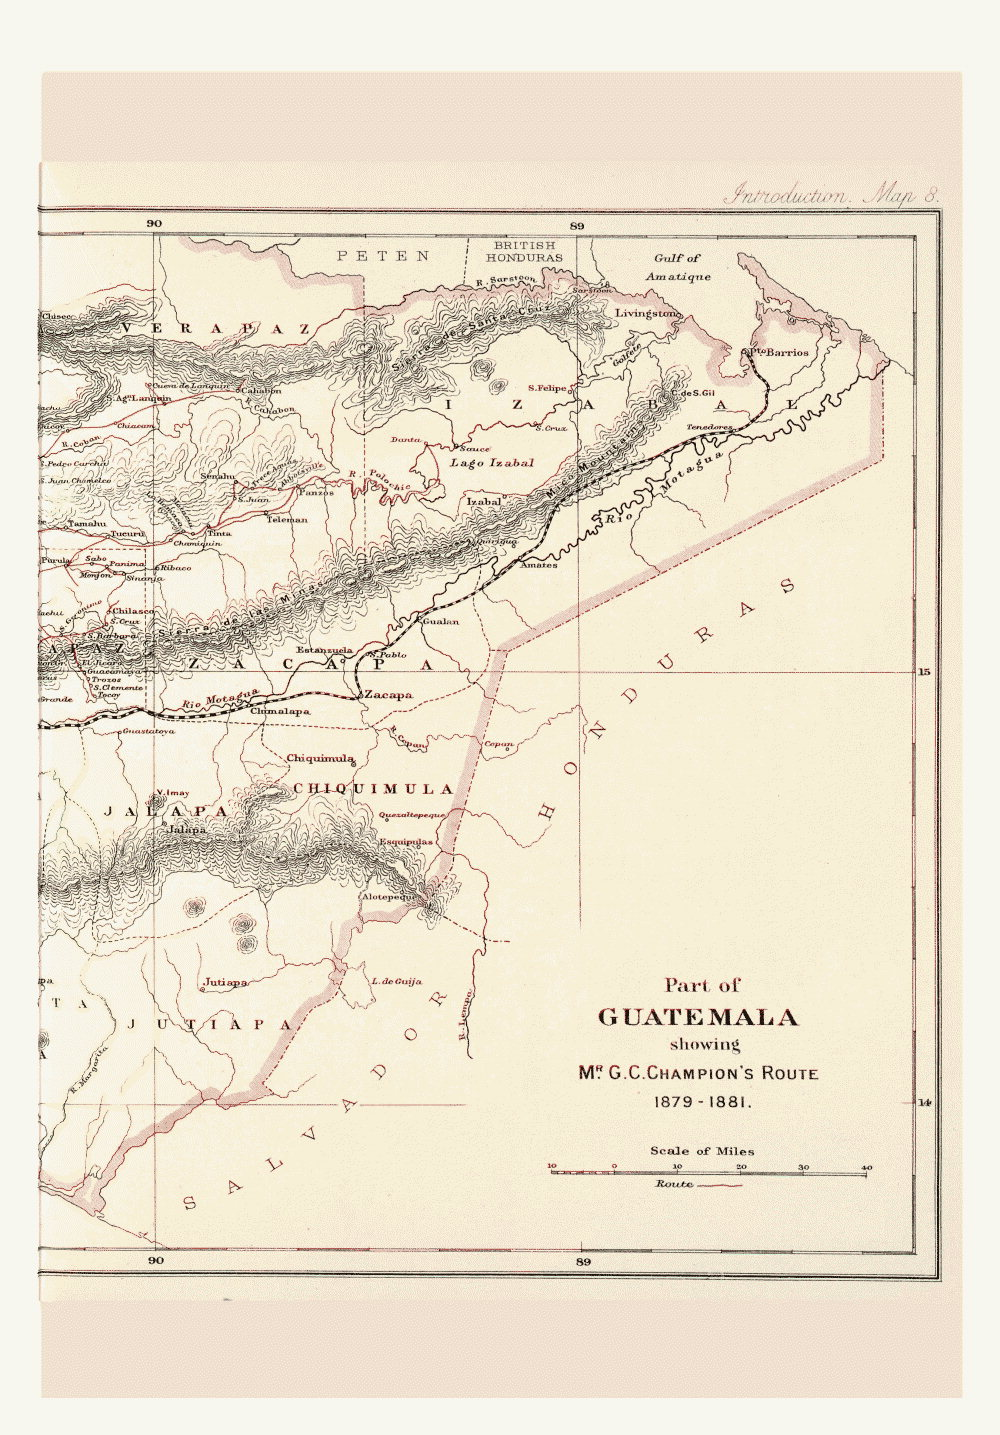 Maps of Central America,  Image number:bca_01_00_00_203